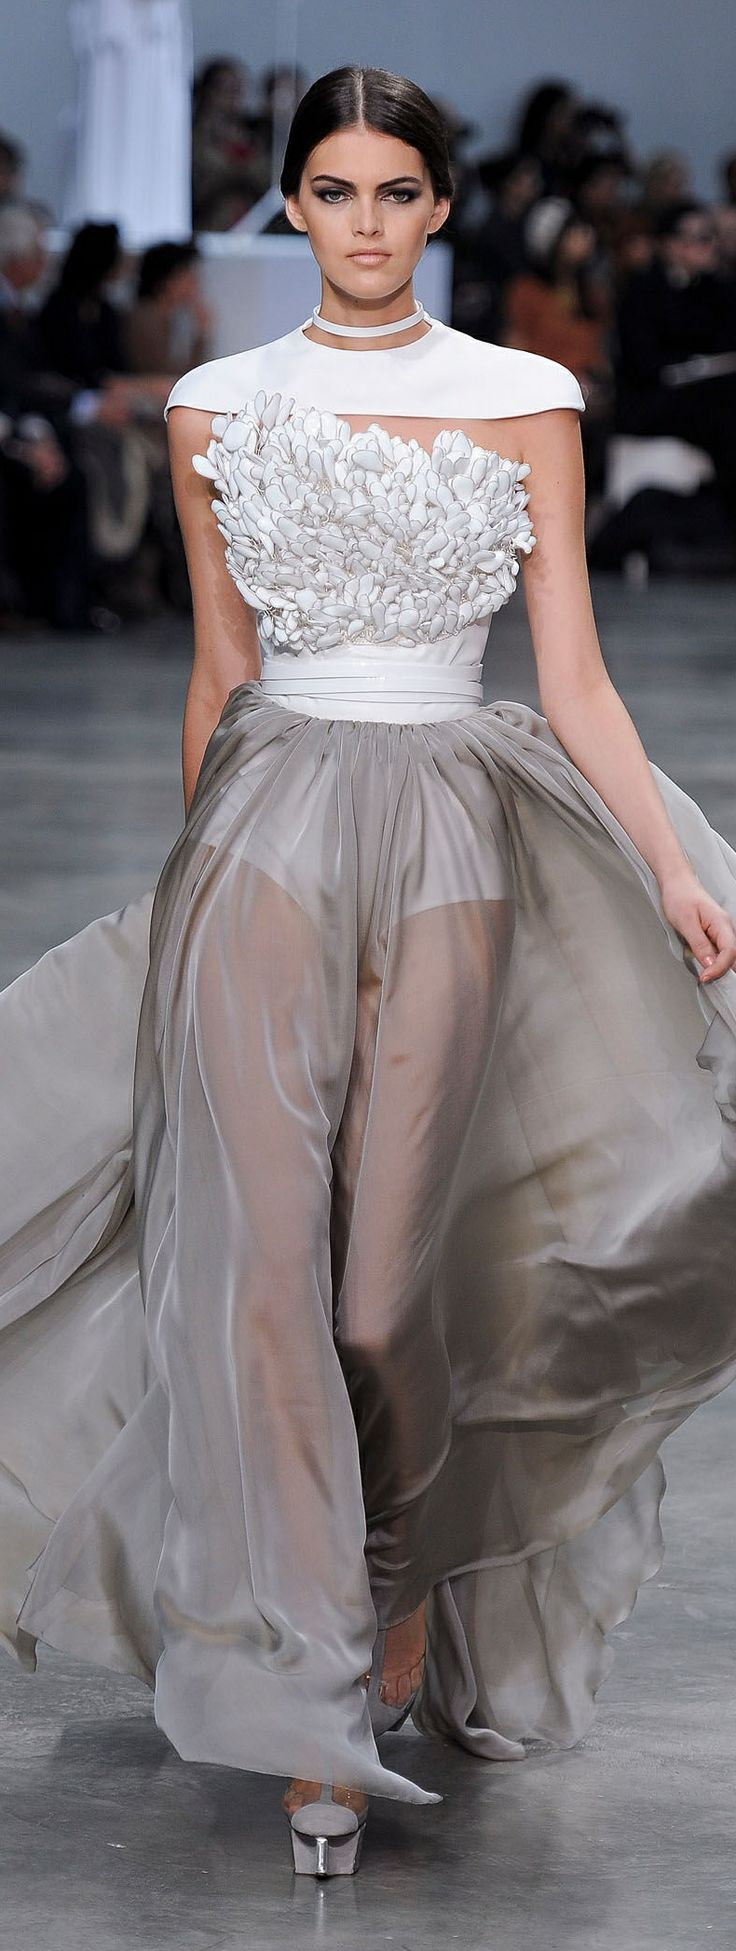 Stephane Rolland Haute Couture S/S 2013